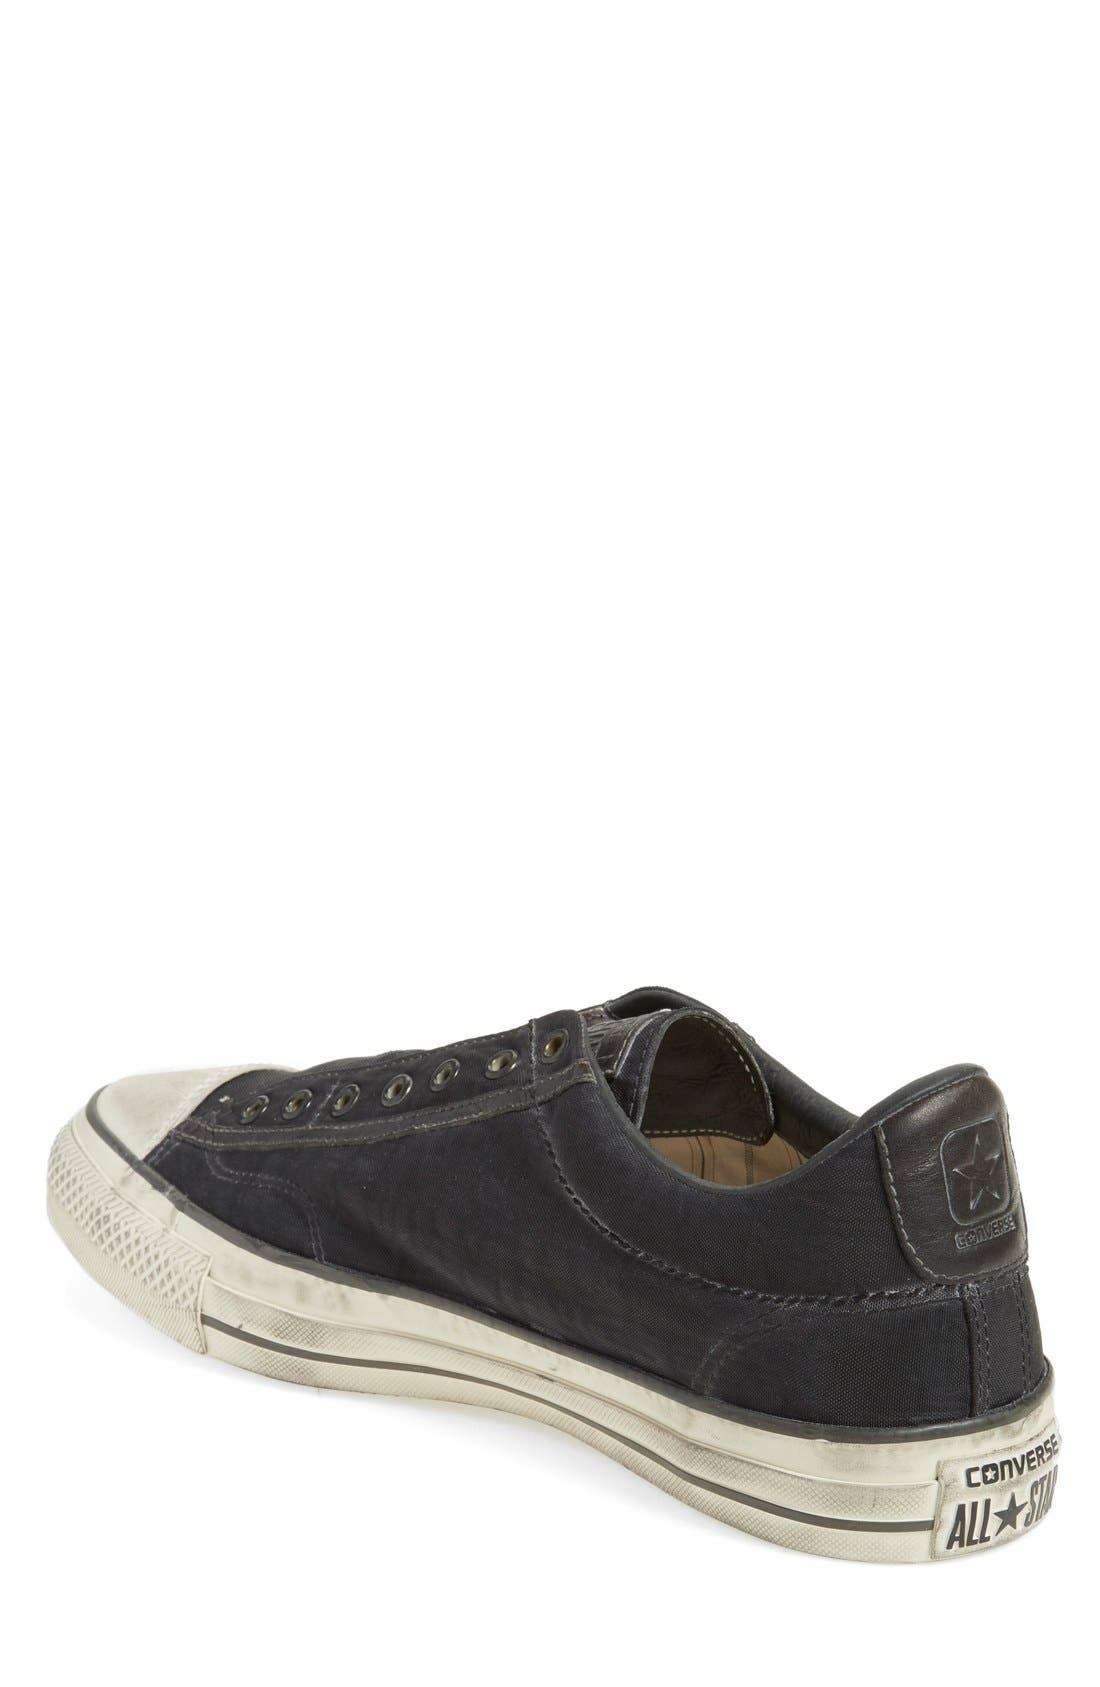 Alternate Image 2  - Converse by John Varvatos 'Vintage' Sneaker (Men)